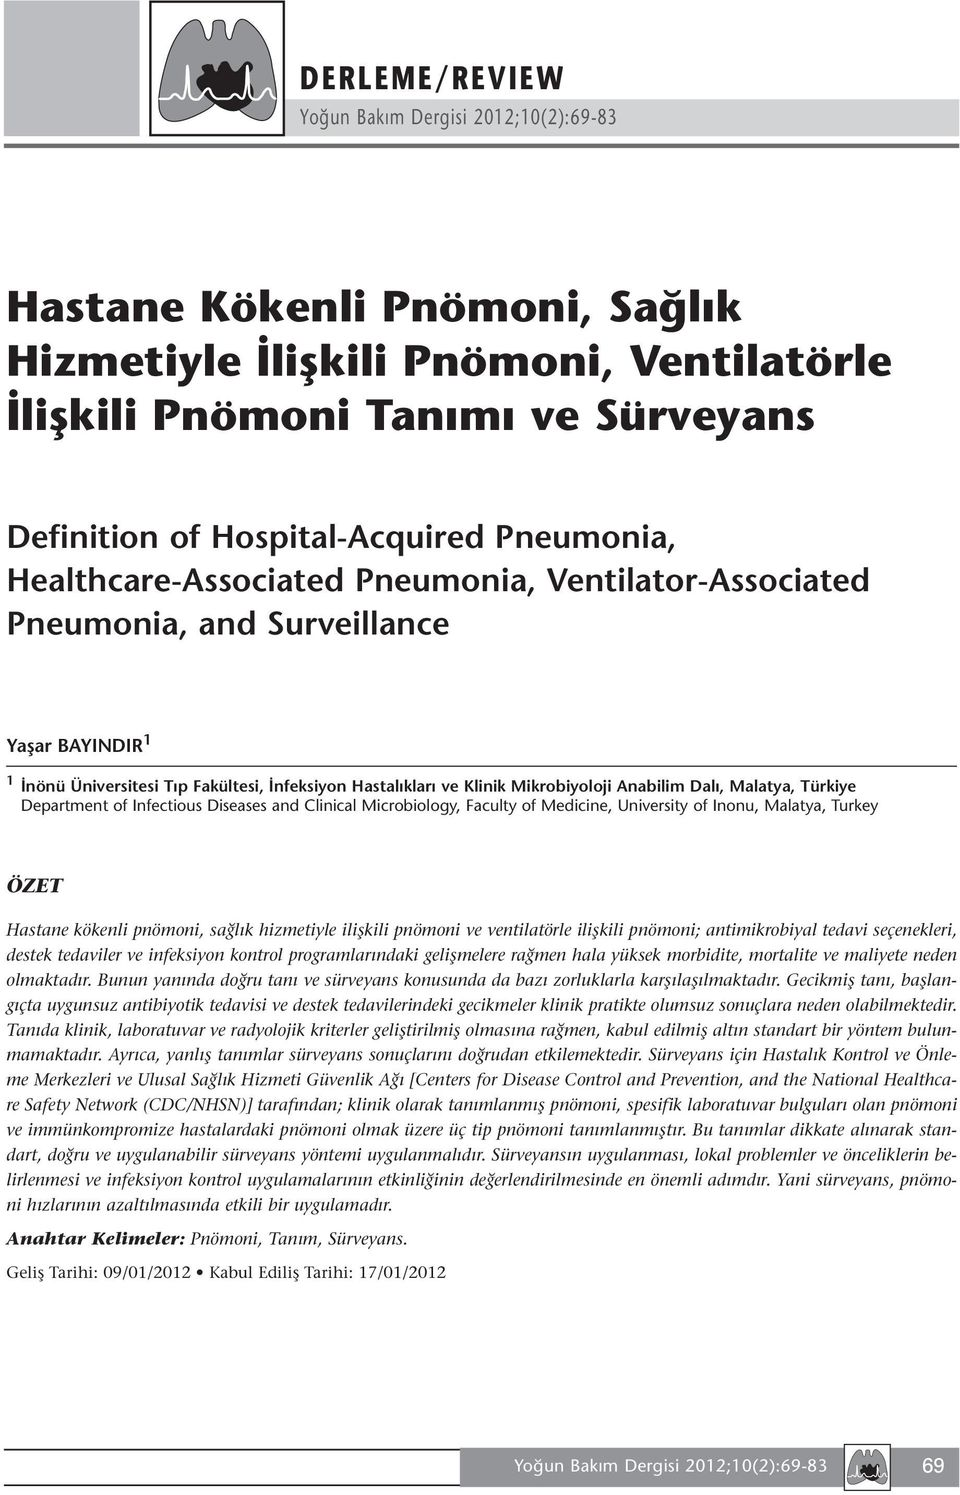 Department of Infectious Diseases and Clinical Microbiology, Faculty of Medicine, University of Inonu, Malatya, Turkey ÖZET Hastane kökenli pnömoni, sağlık hizmetiyle ilişkili pnömoni ve ventilatörle